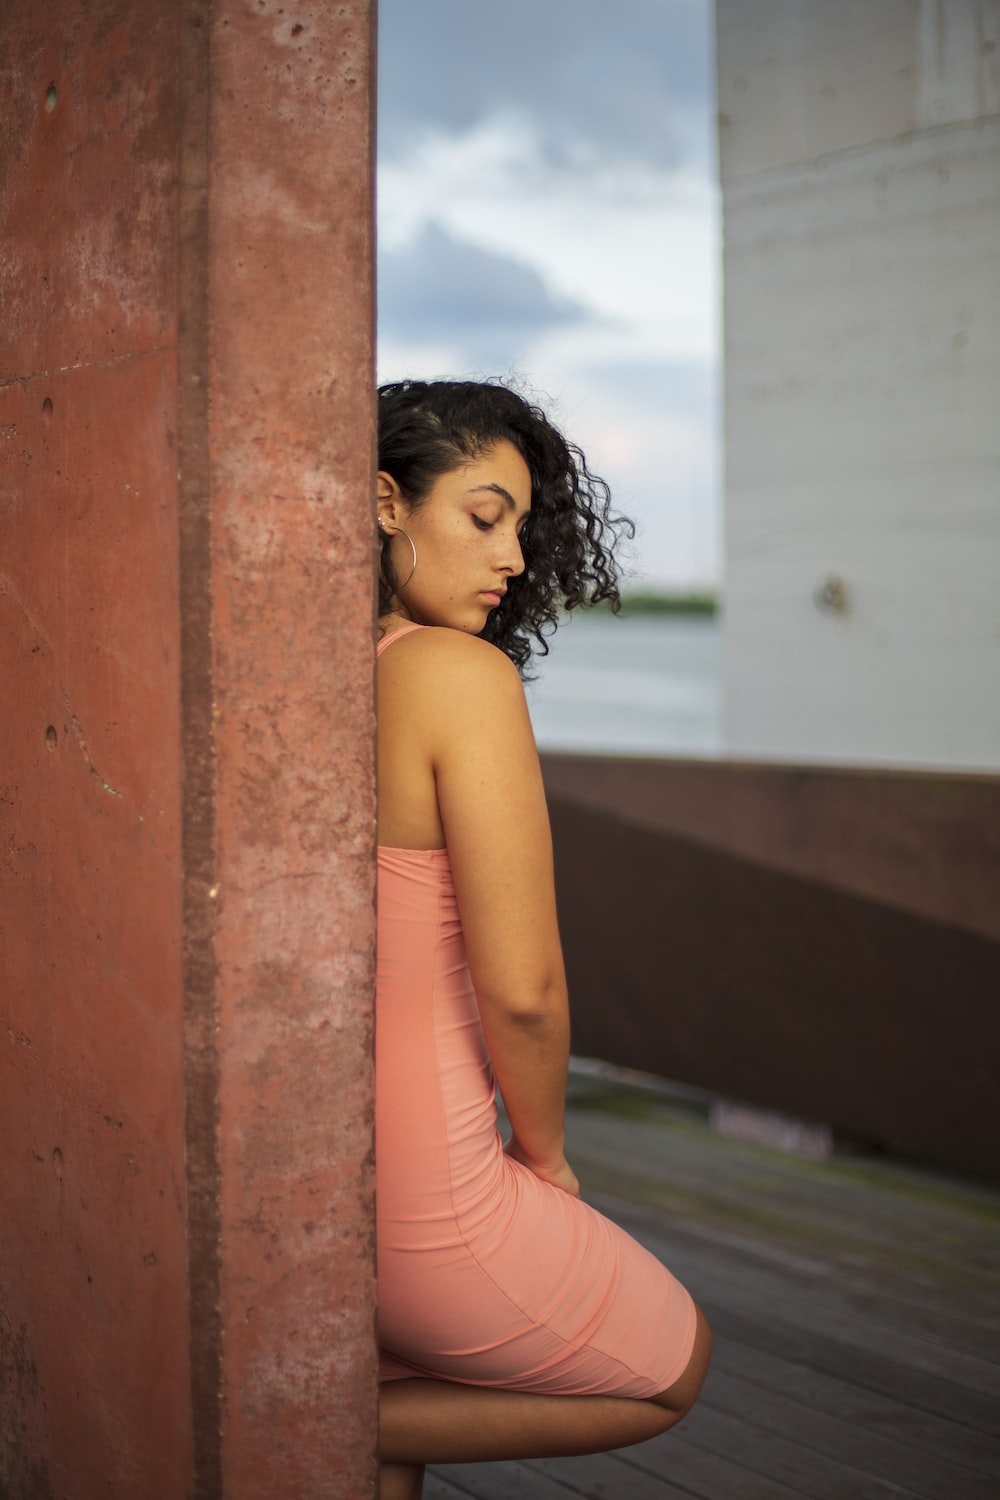 woman in pink tank top leaning on brown concrete wall during daytime